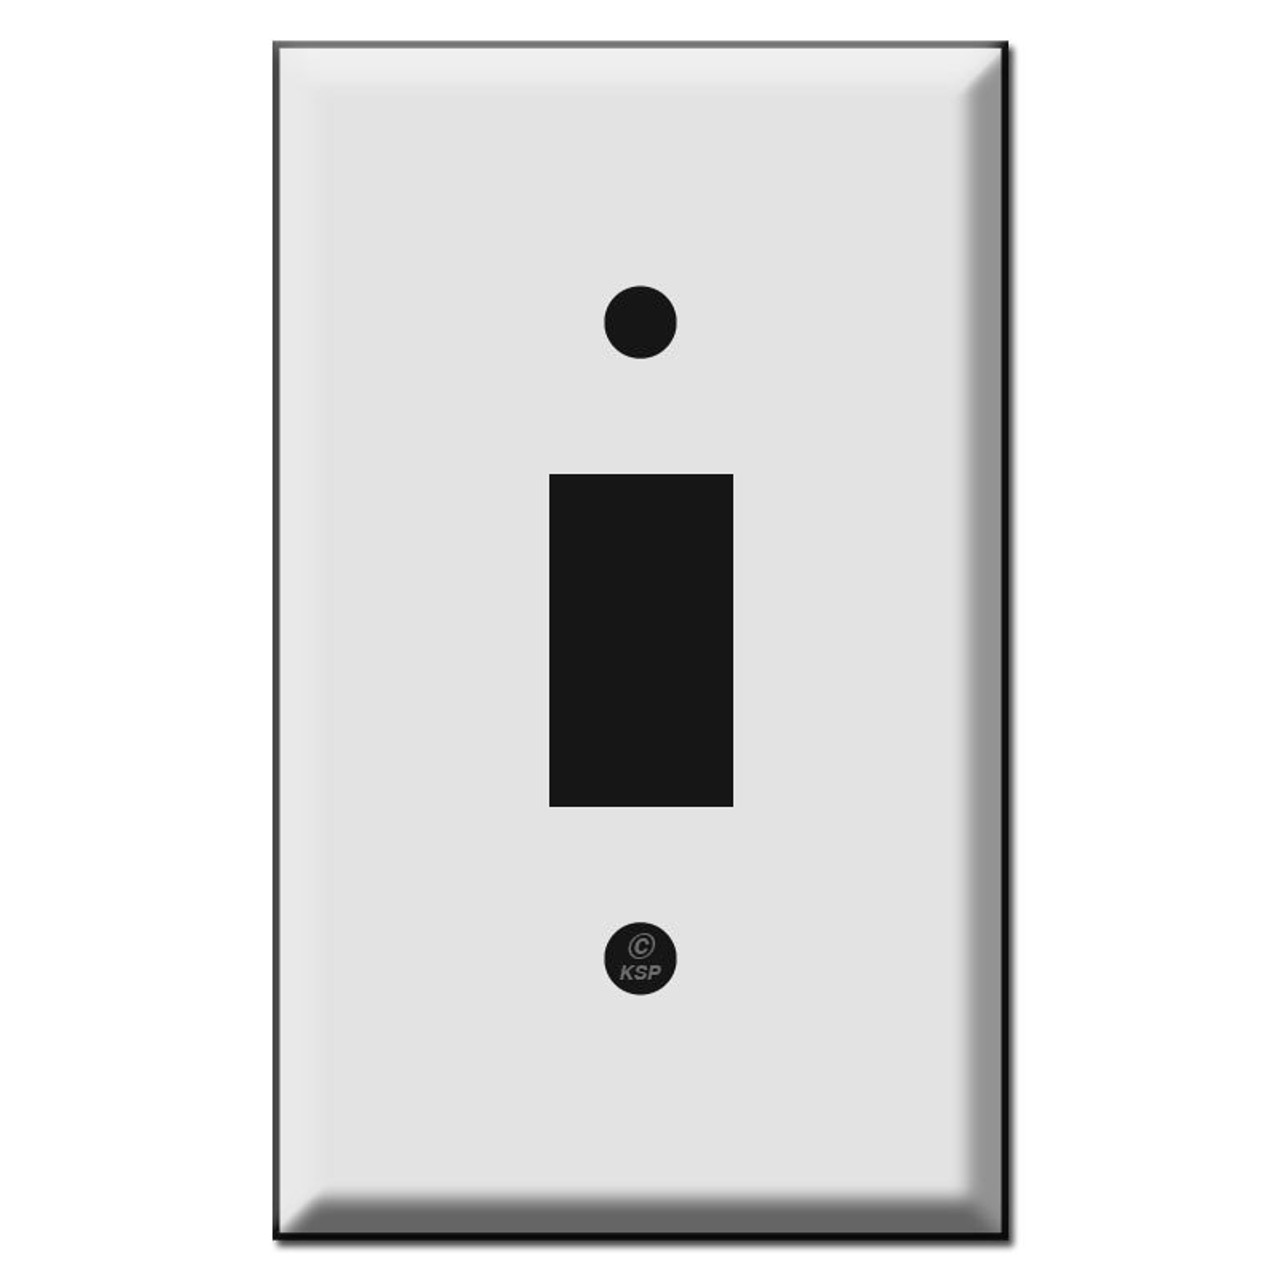 Somfy Awning or Window Cover Switch Plates